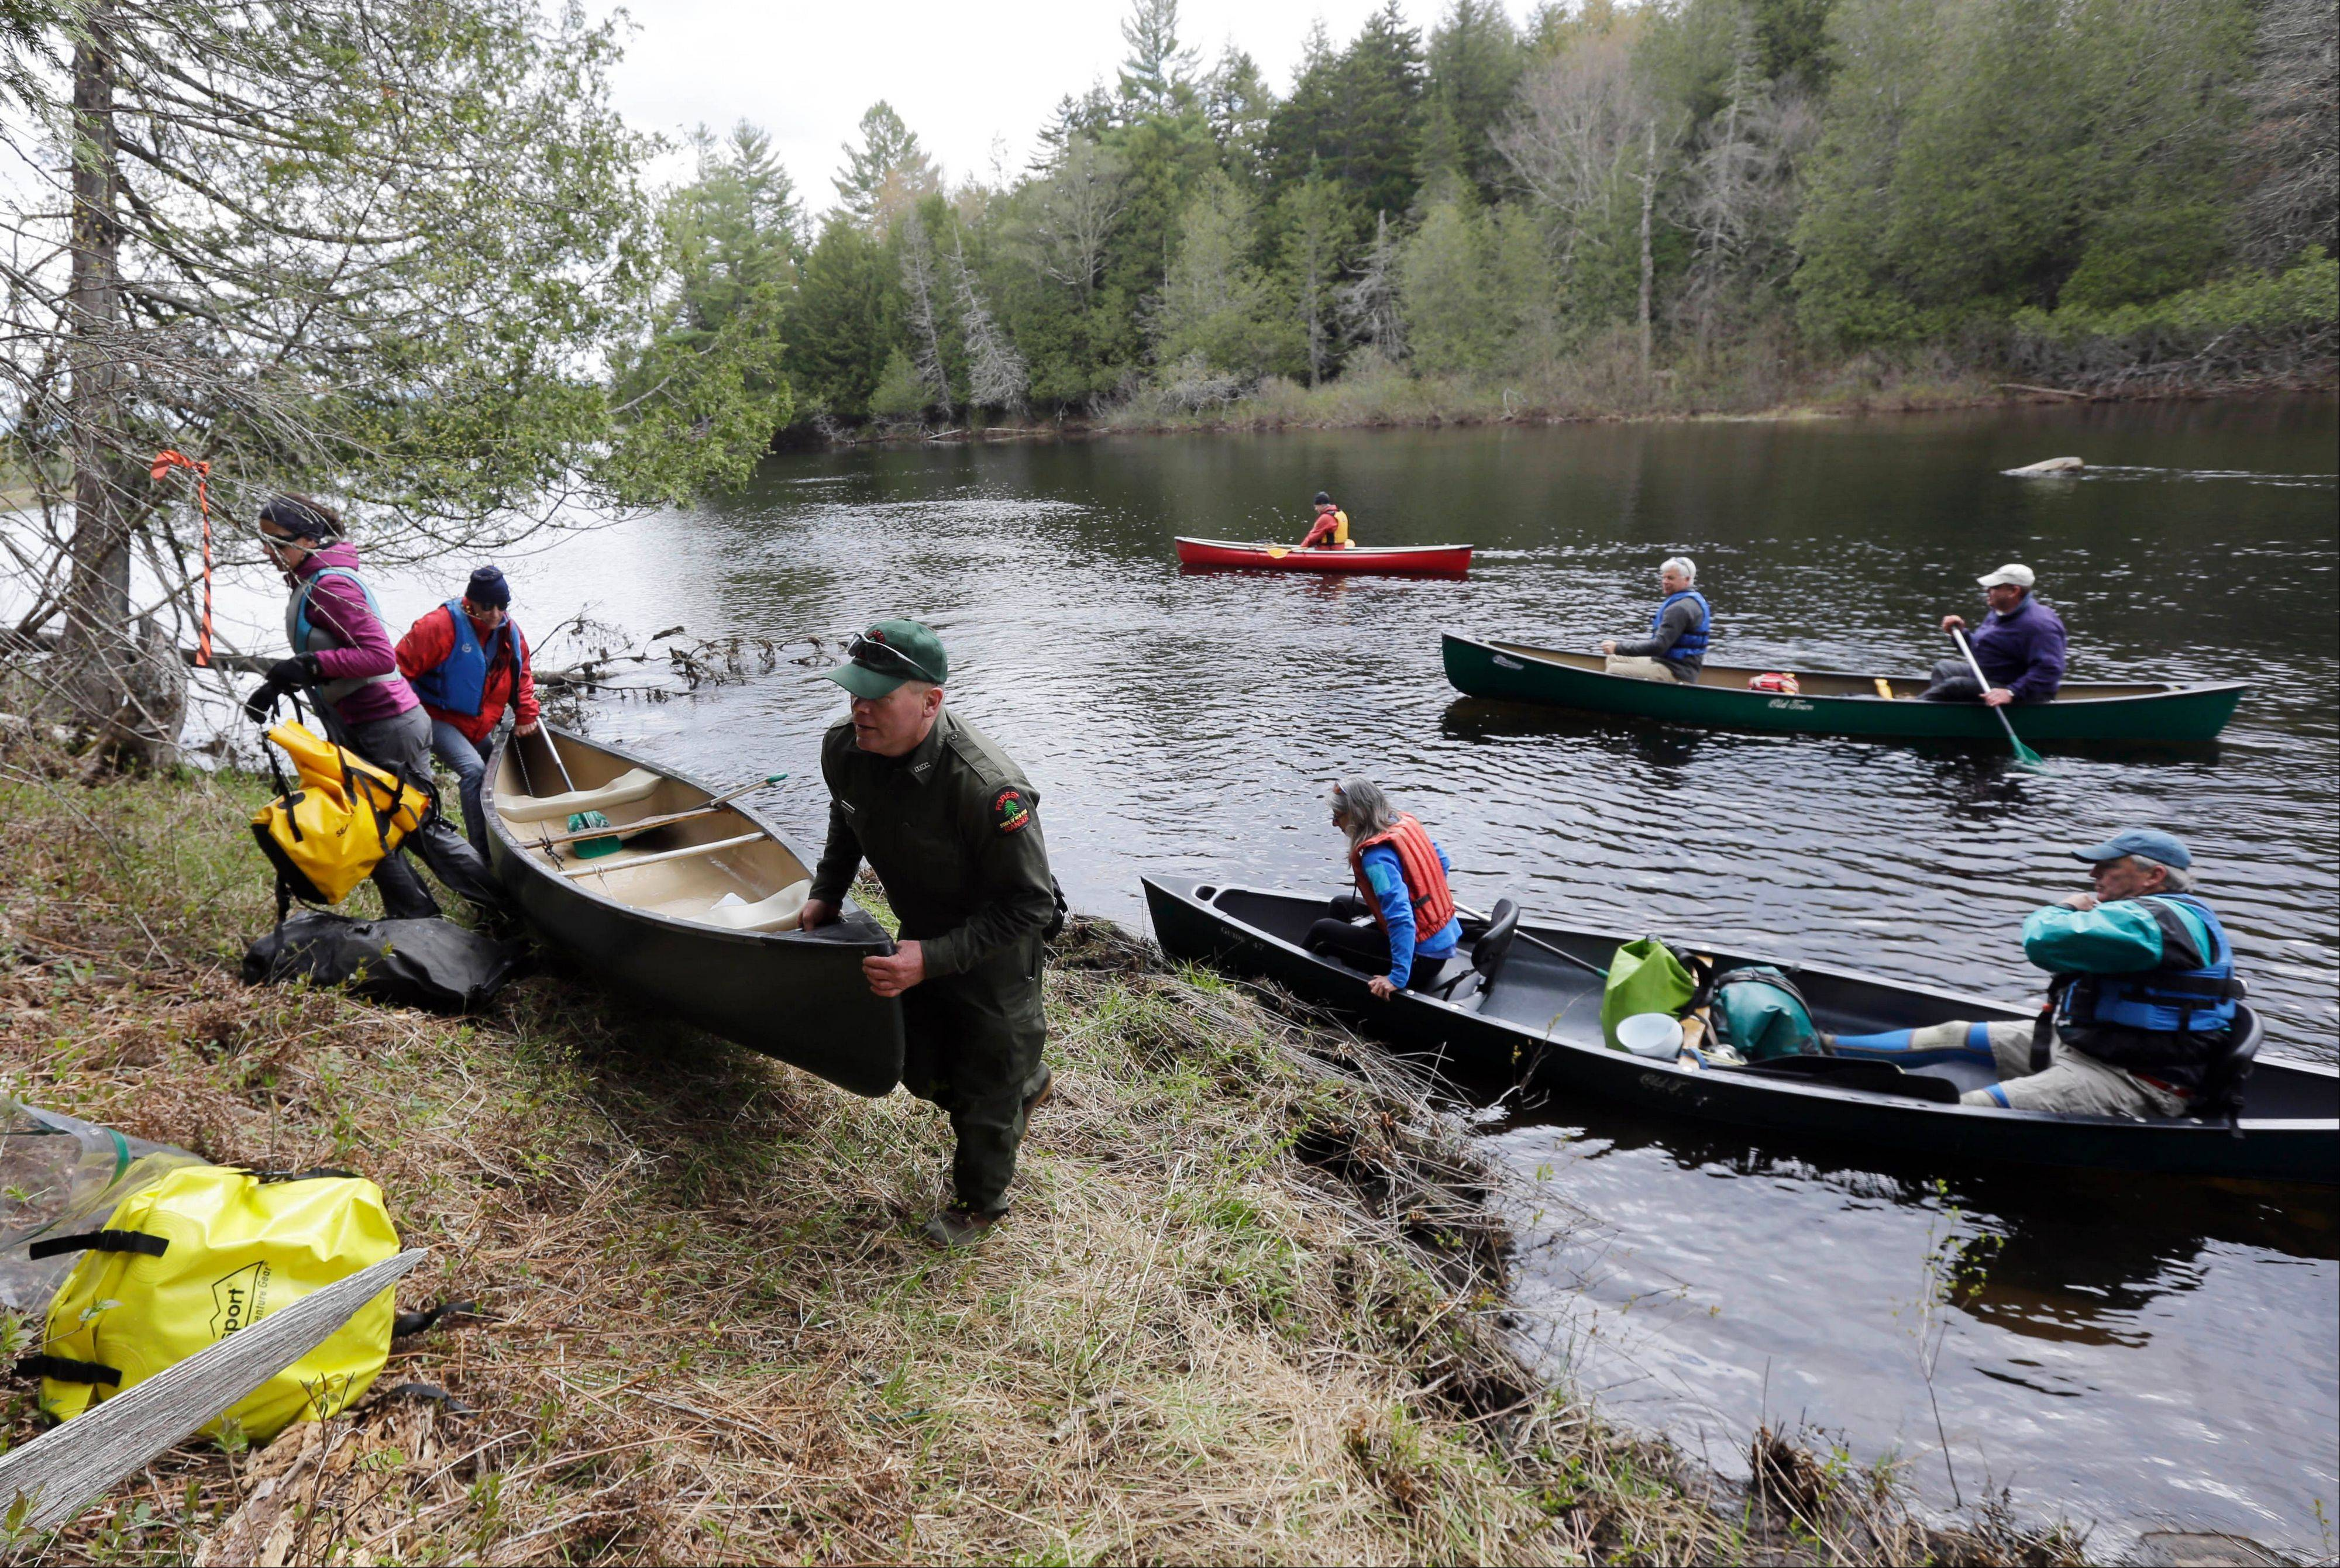 State Forest Ranger Delbert Jeffery, center, helps canoeists with their canoes before a portage during a trip on the upper Hudson River in Newcomb, N.Y.